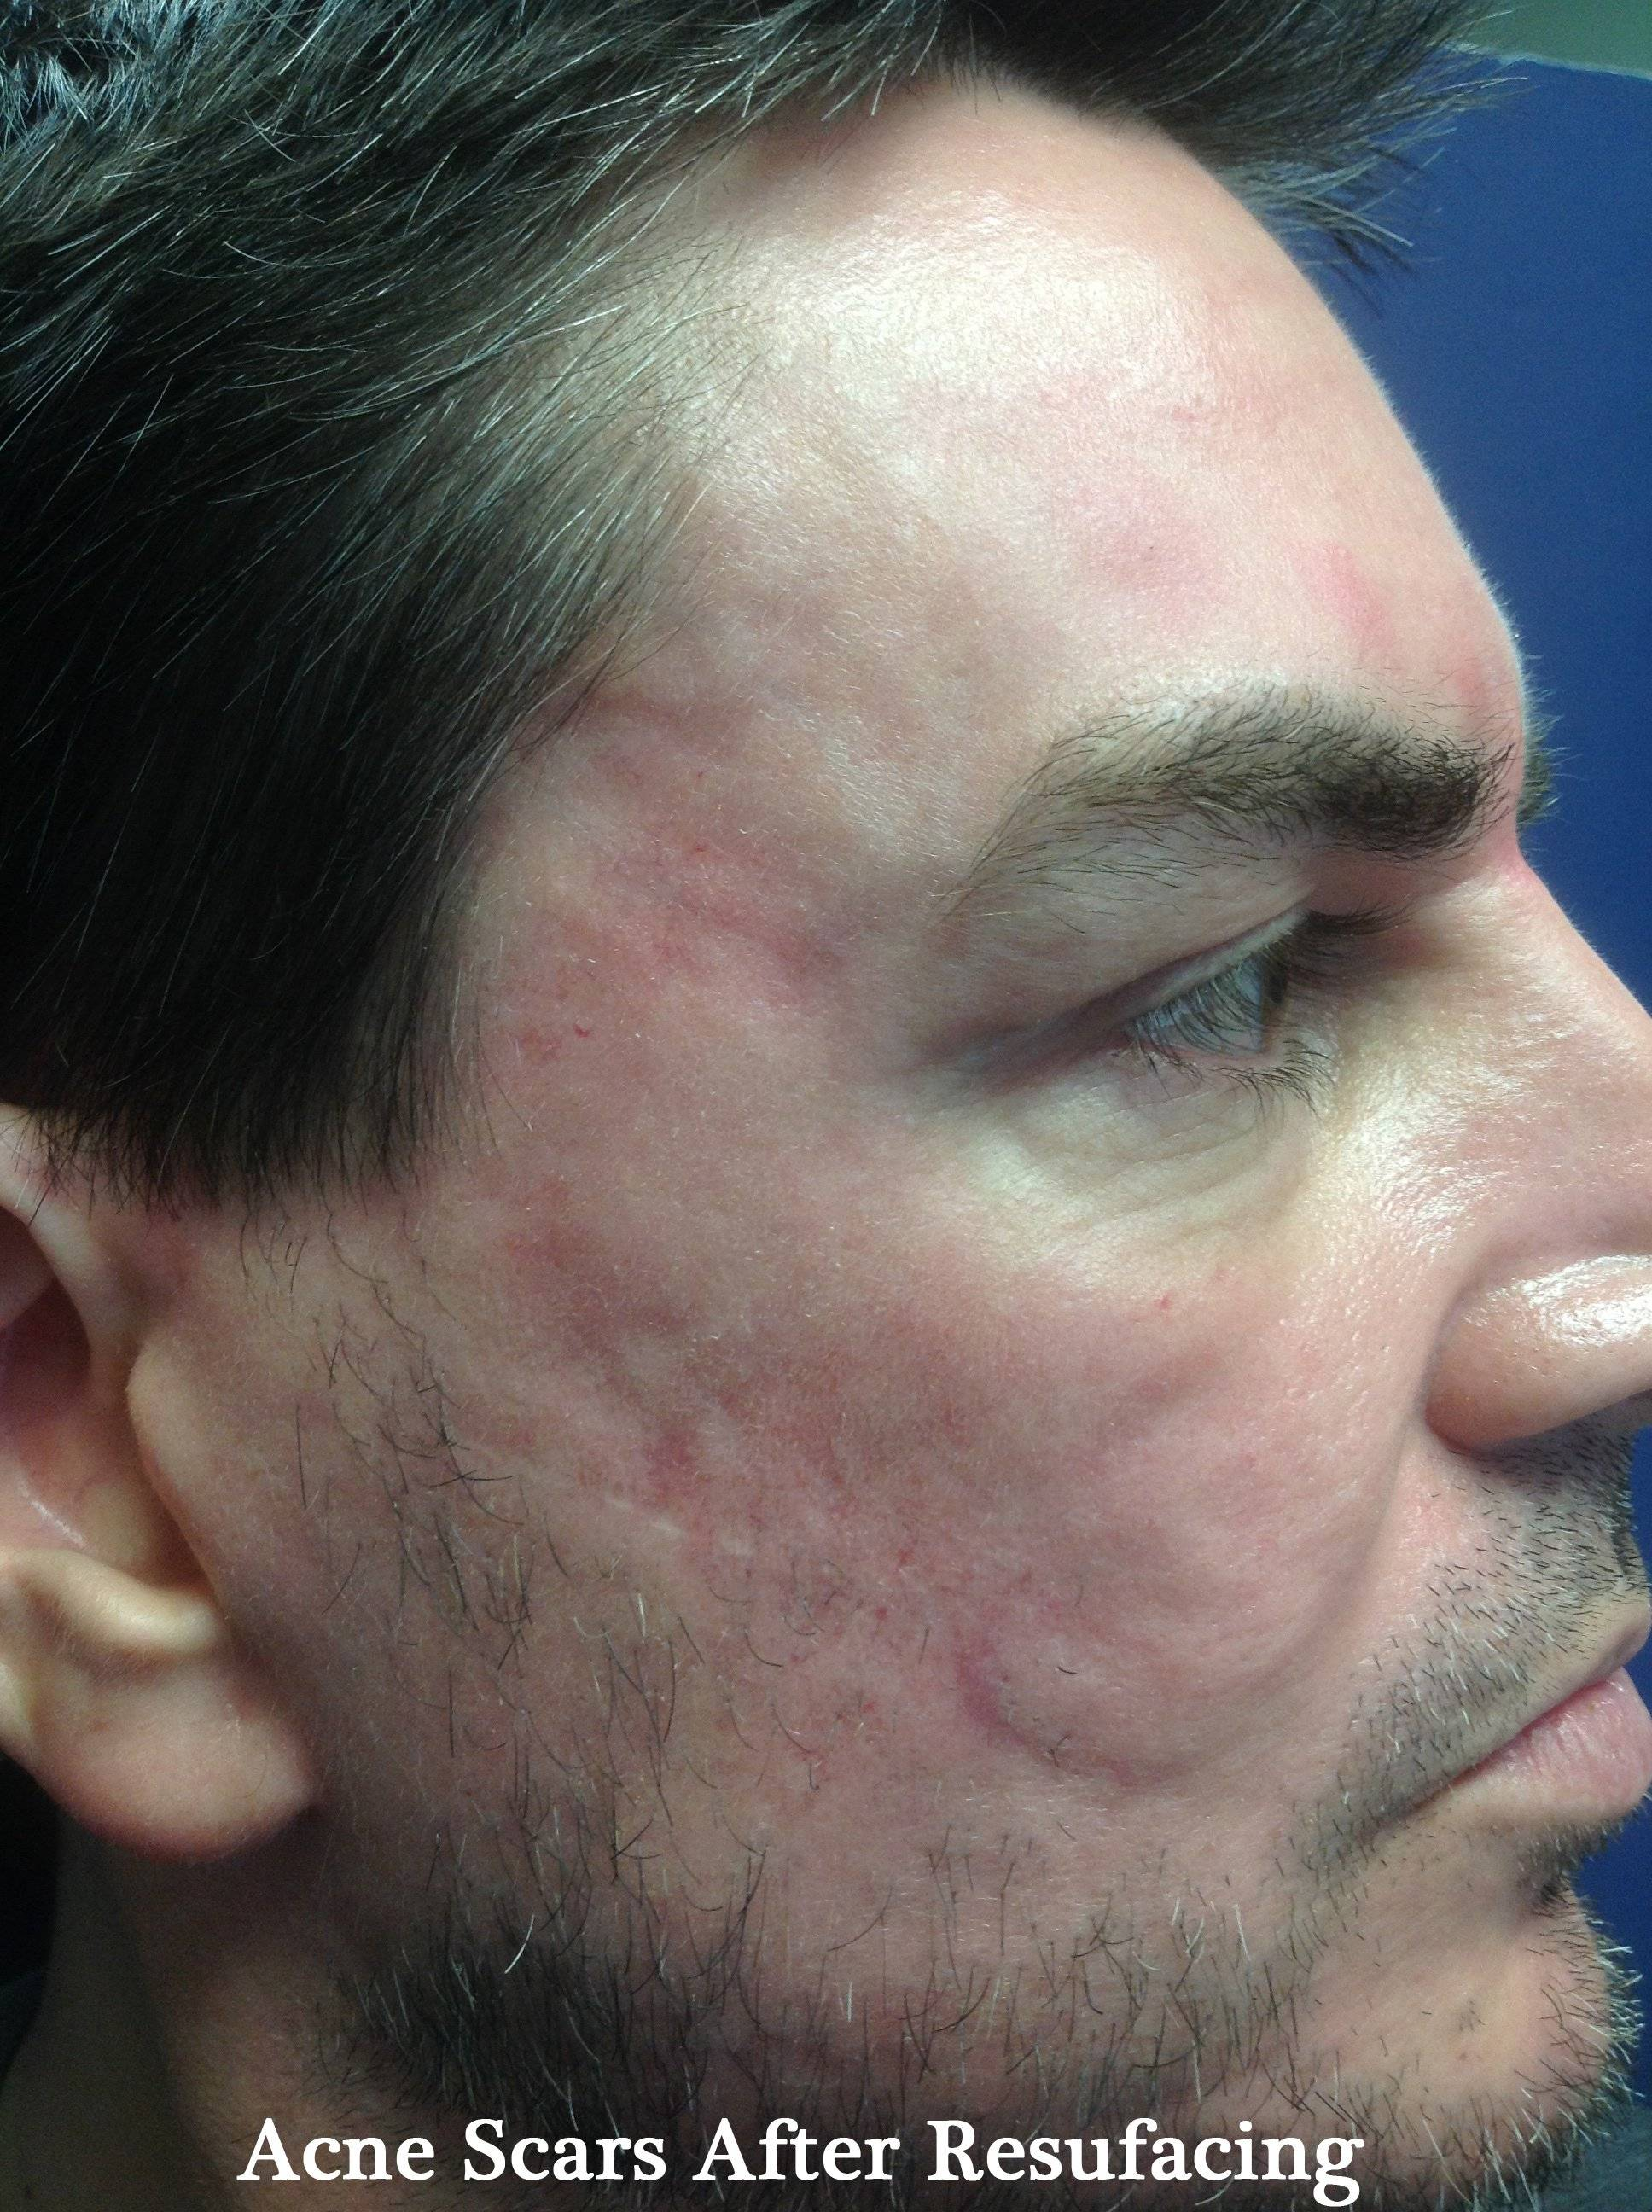 acne scarring after resurfacing